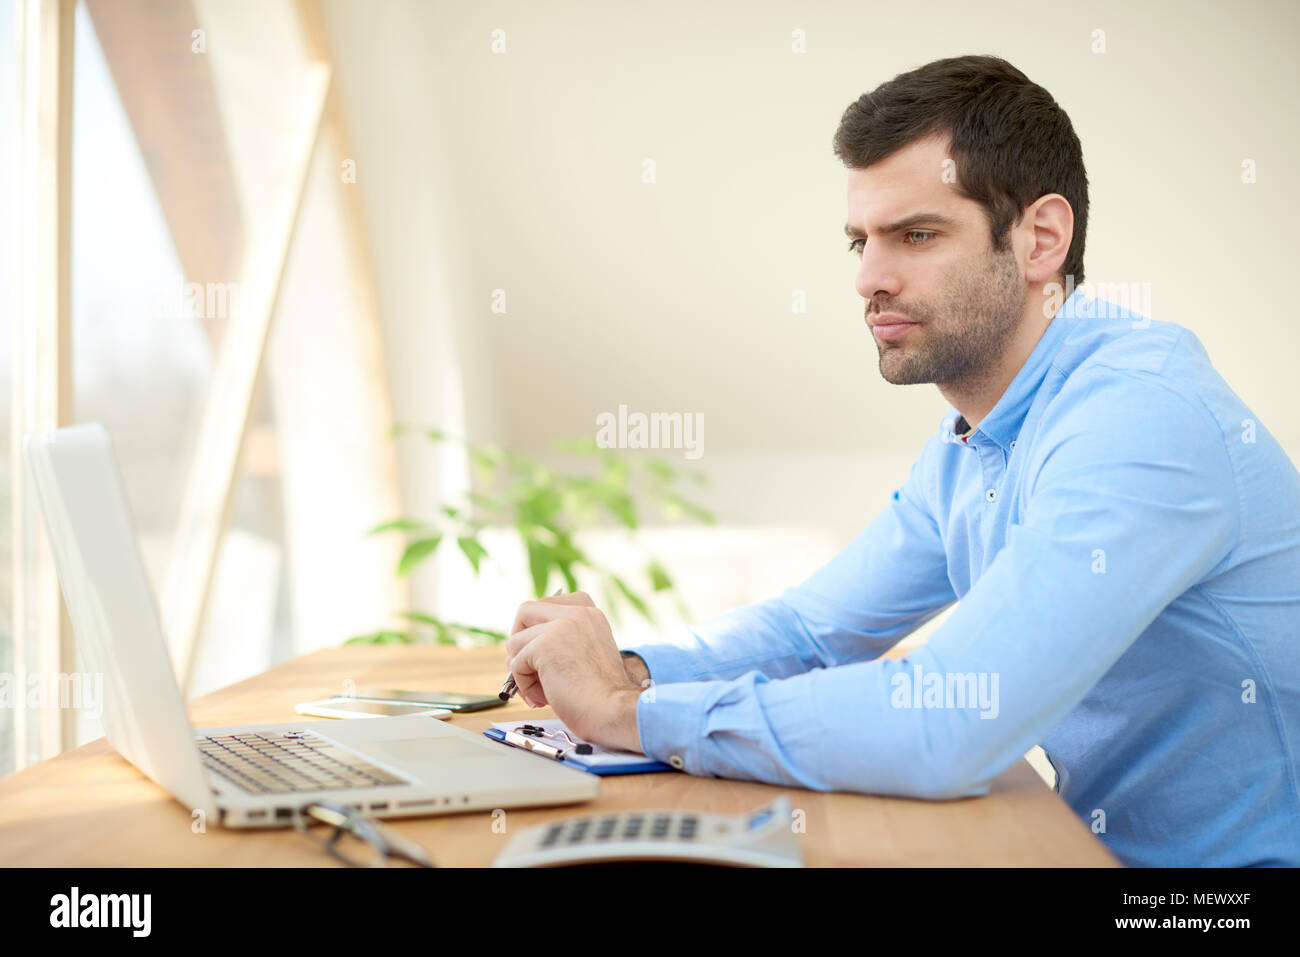 Portrait of young businessman sitting at office desk in front of laptop and looking thoughtfull while working online. Home office. - Stock Image